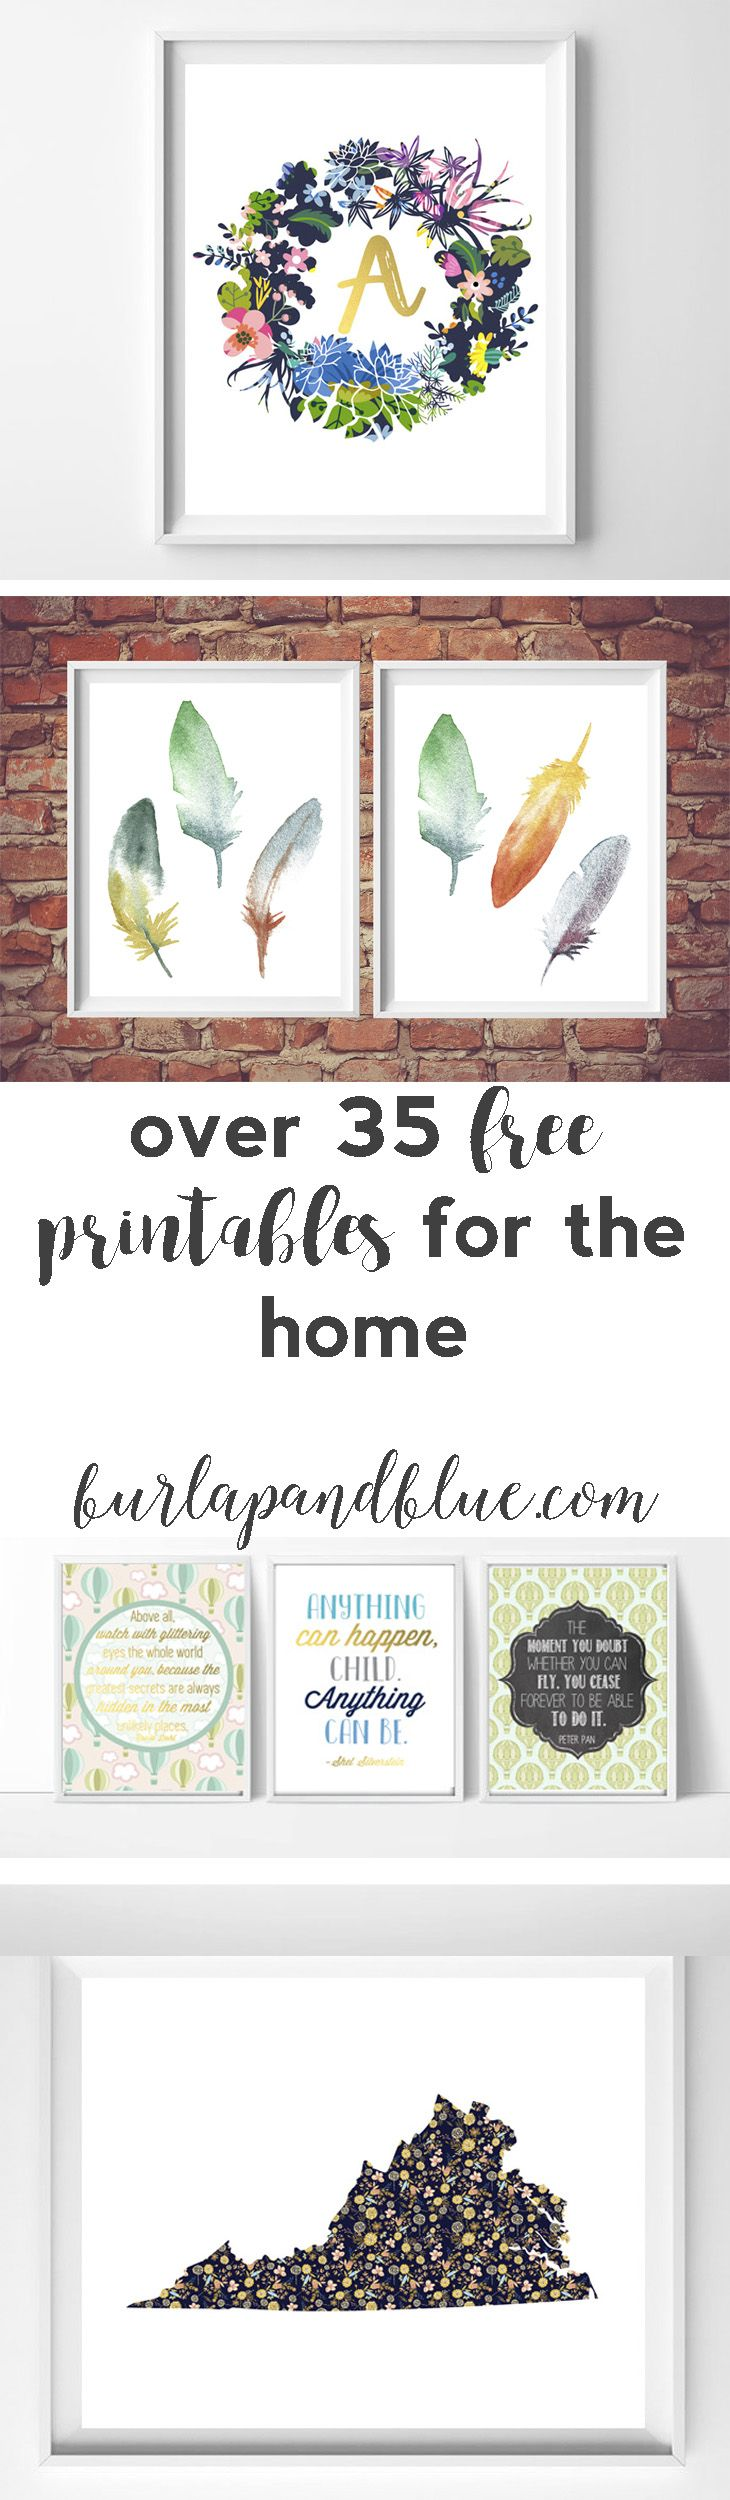 17 best ideas about printable art on pinterest free printable